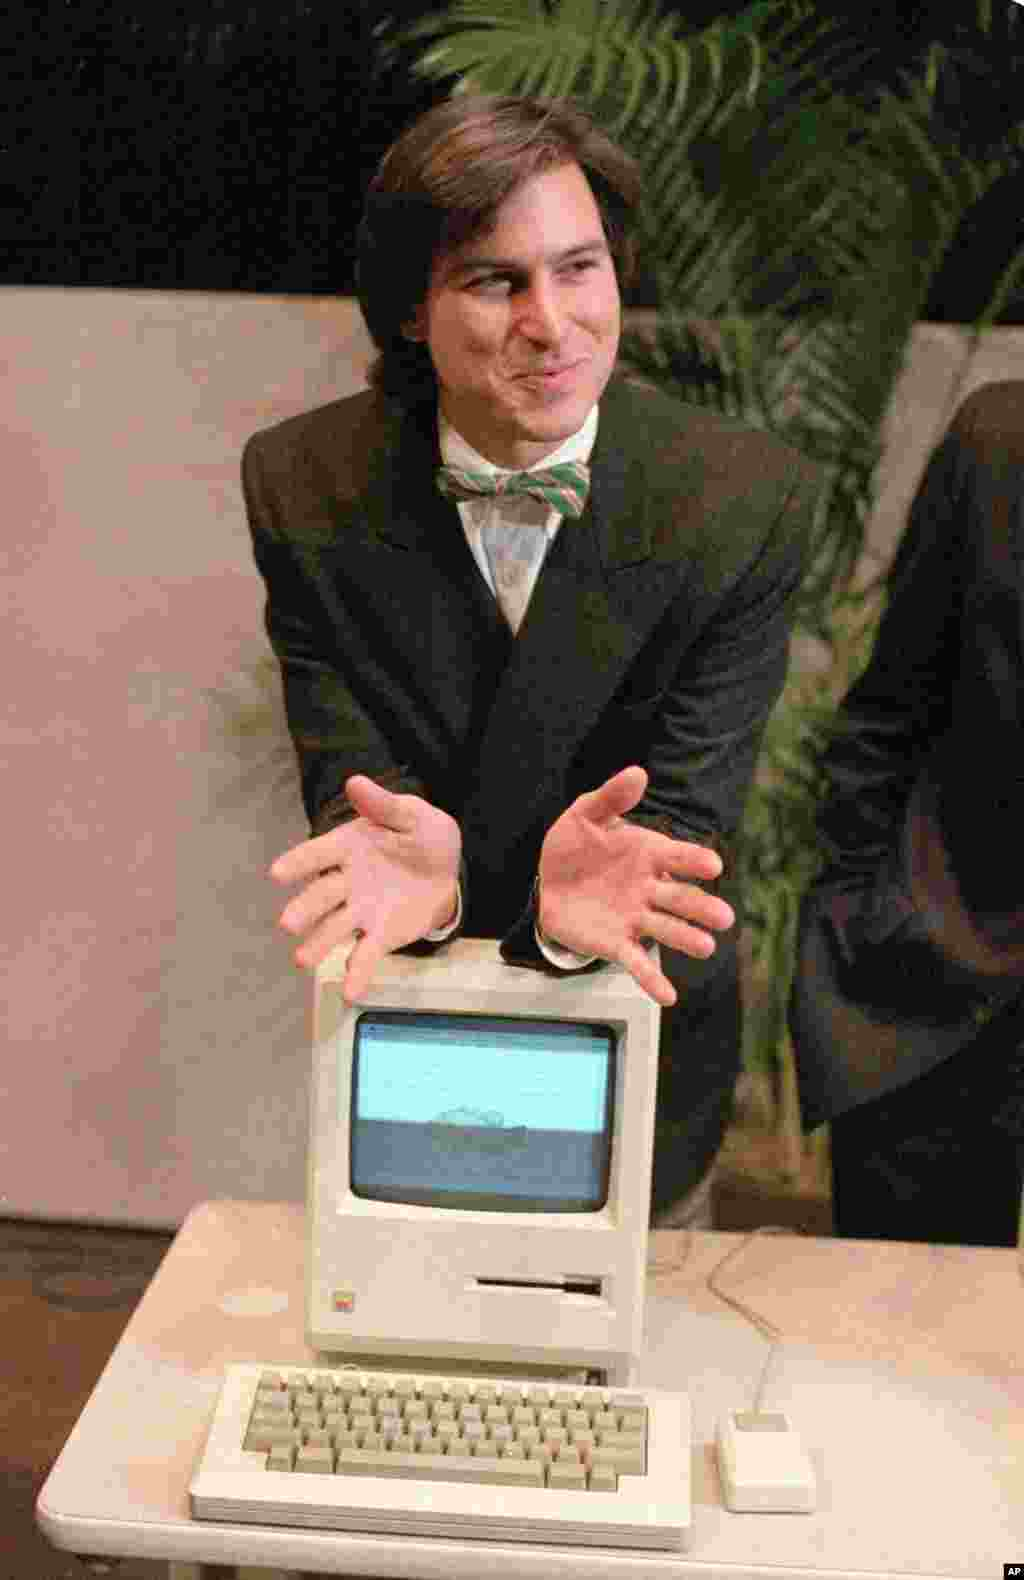 Steve Jobs, chairman of the board of Apple Computer, leaning on a new Macintosh personal computer following a shareholder's meeting January 24, 1984 in Cupertino, California. The Macintosh was initially priced at $2,495.